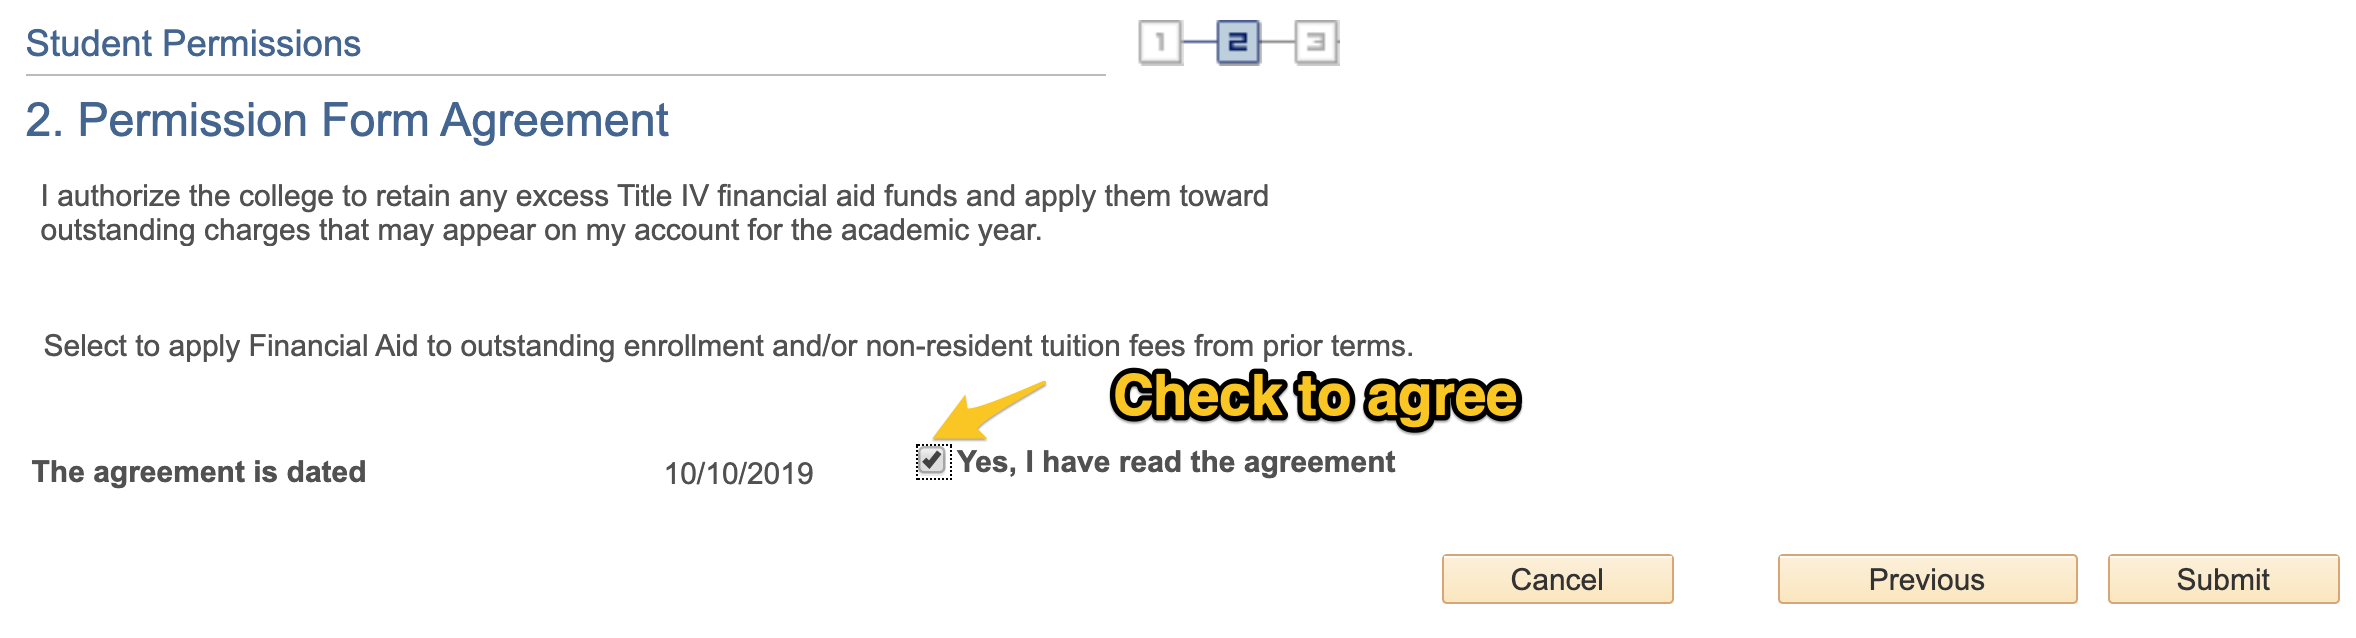 The Permission Form Agreement will load. Check the agreement checkbox and click Submit.